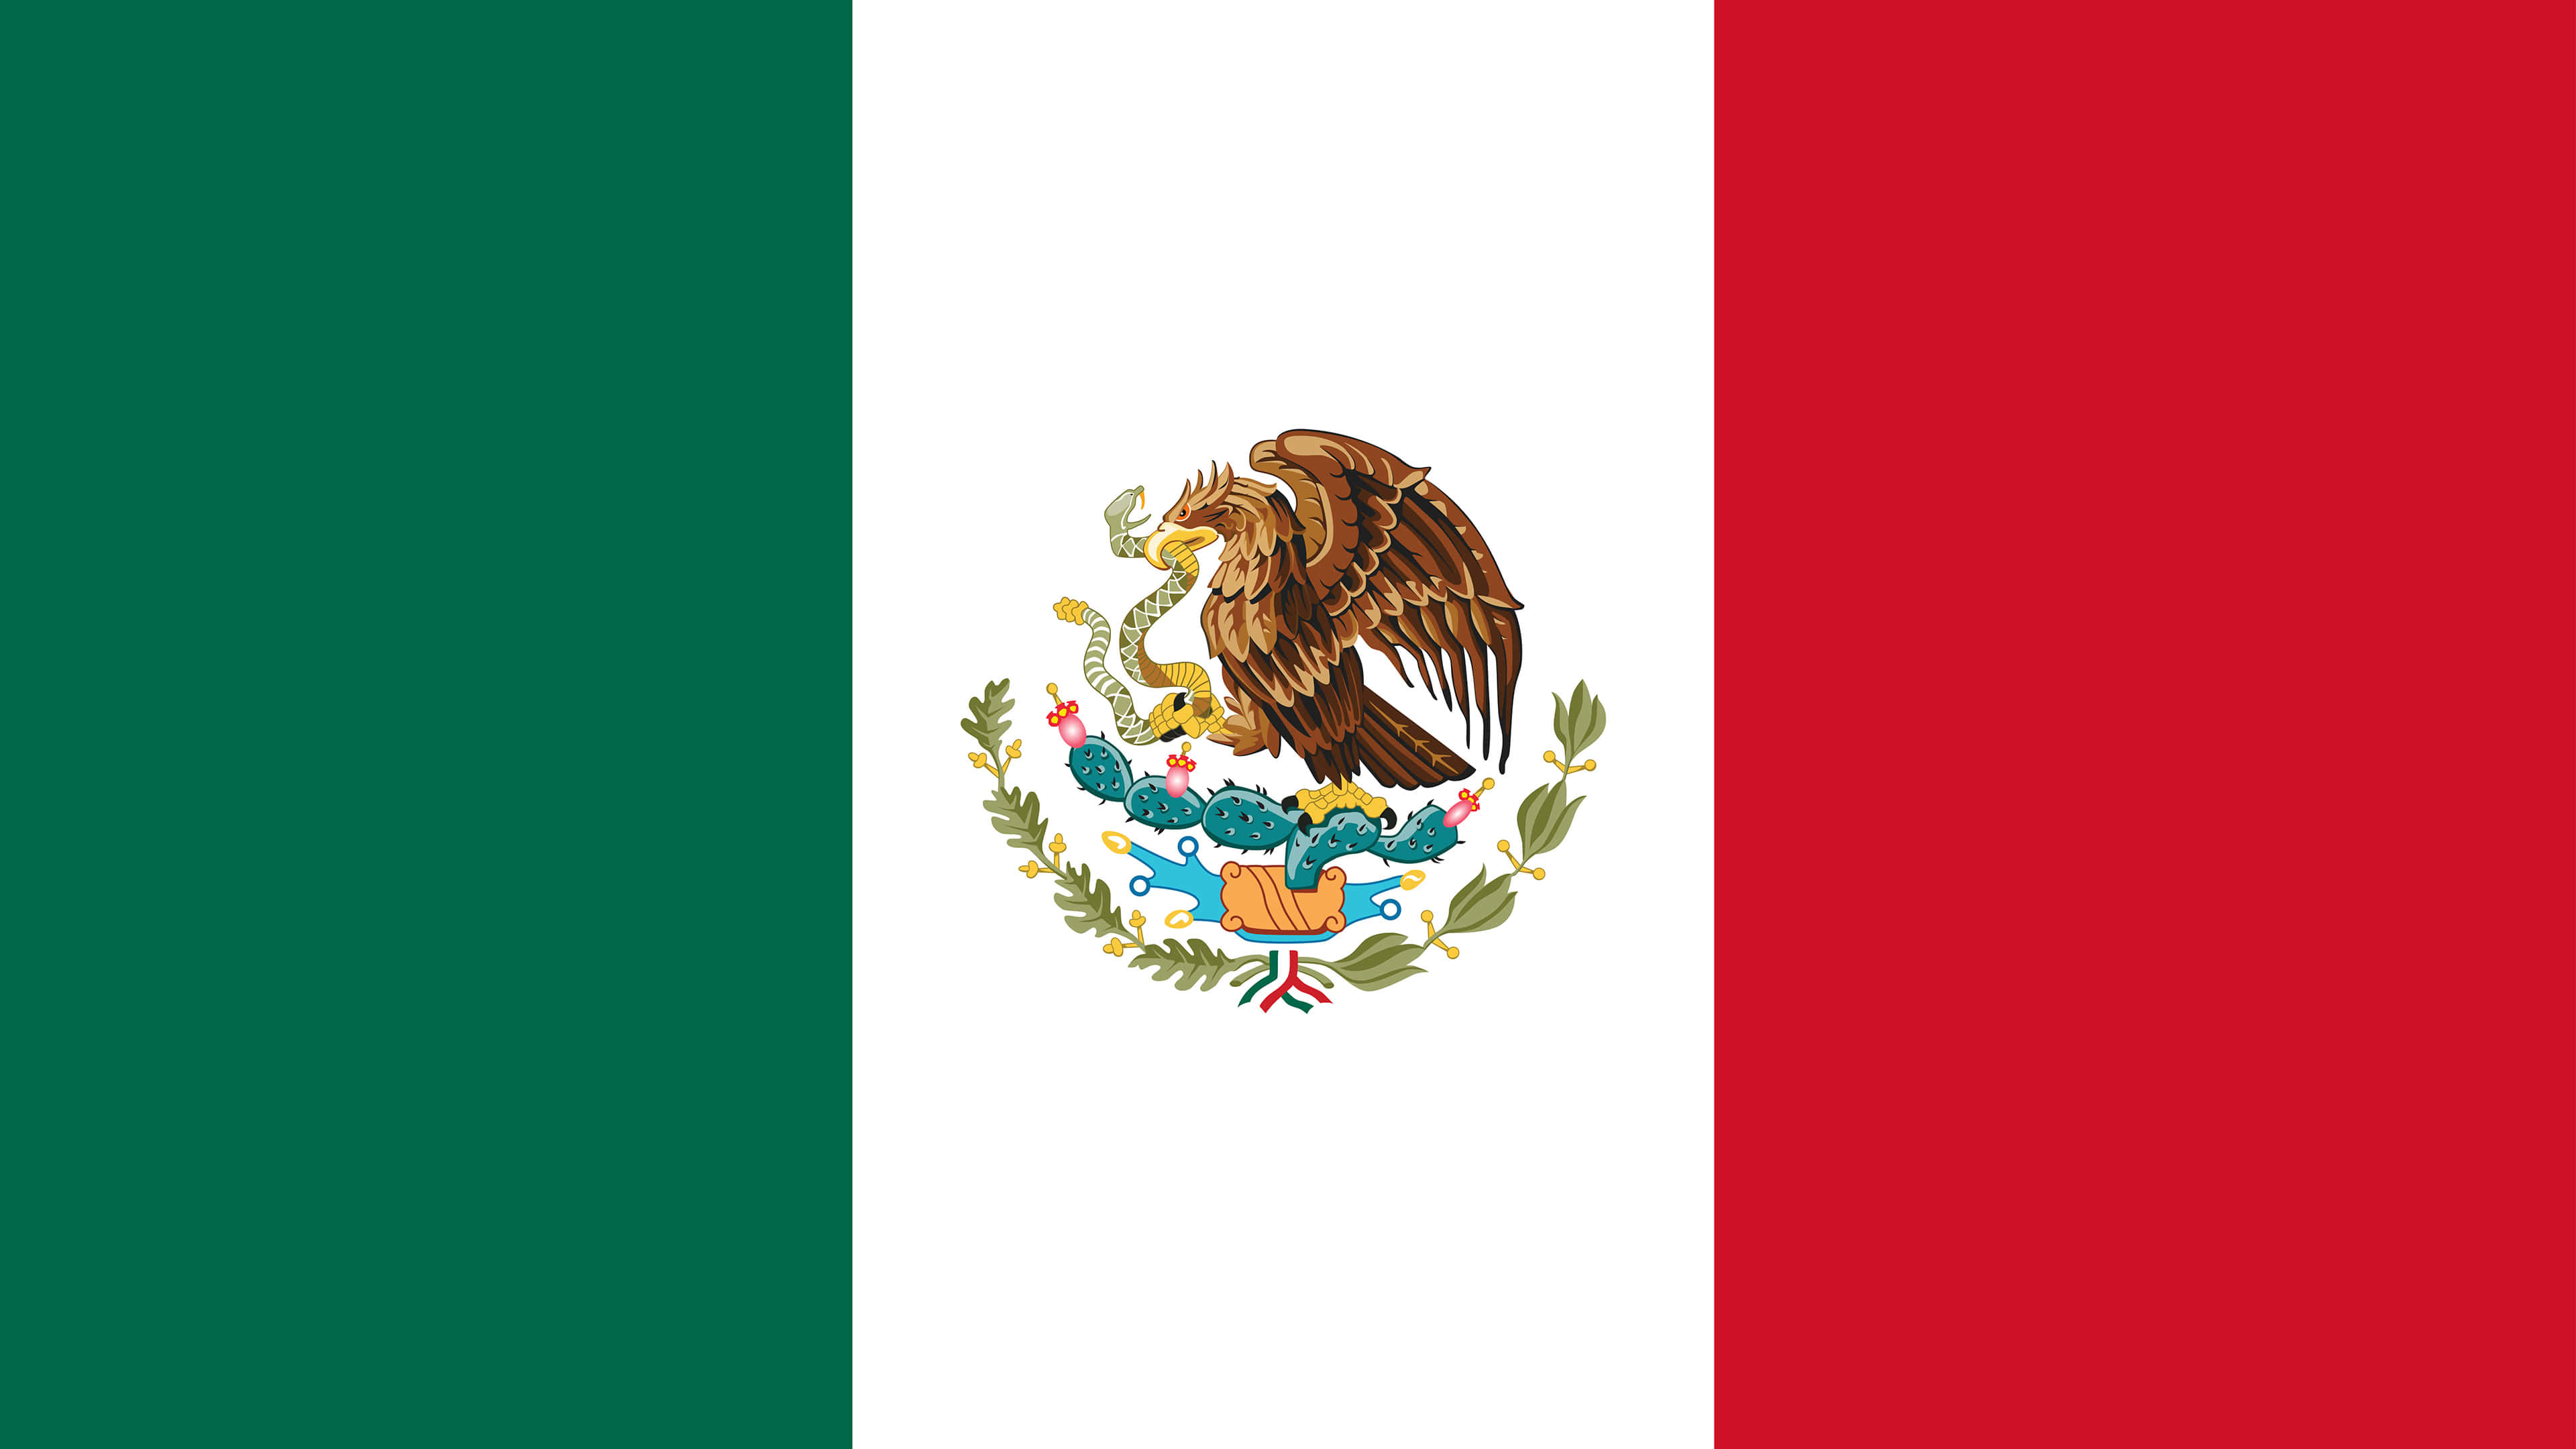 mexico flag uhd 4k wallpaper